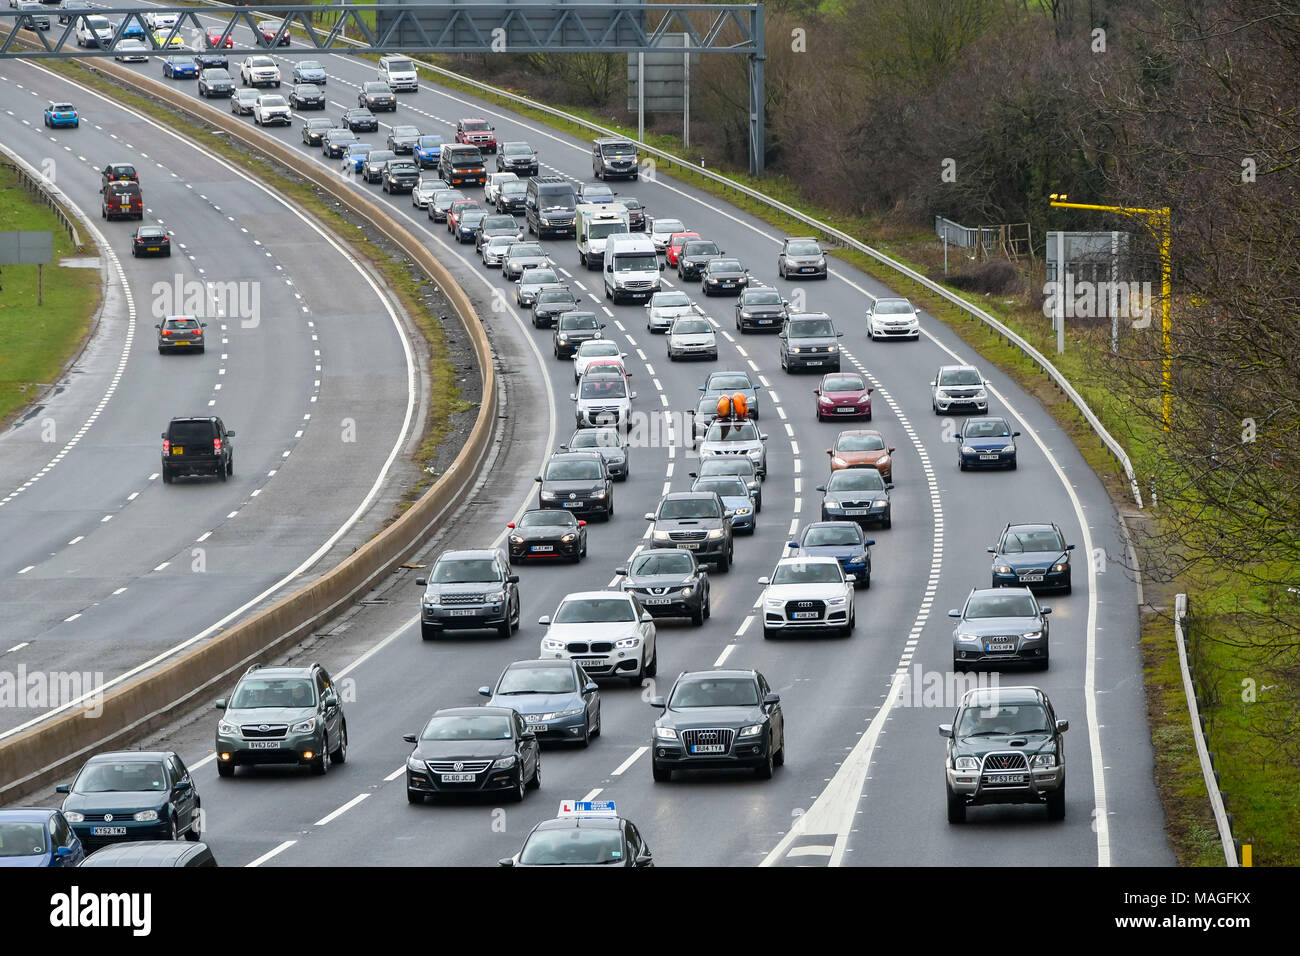 Exeter, Devon, UK. 2nd April 2018. Holidaymakers queuing in a traffic jam on the East bound carriageway on the A38 at Kennford near Exeter in Devon on Easter Monday as they return home from their Easter weekend holidays.  Picture Credit: Graham Hunt/Alamy Live News - Stock Image